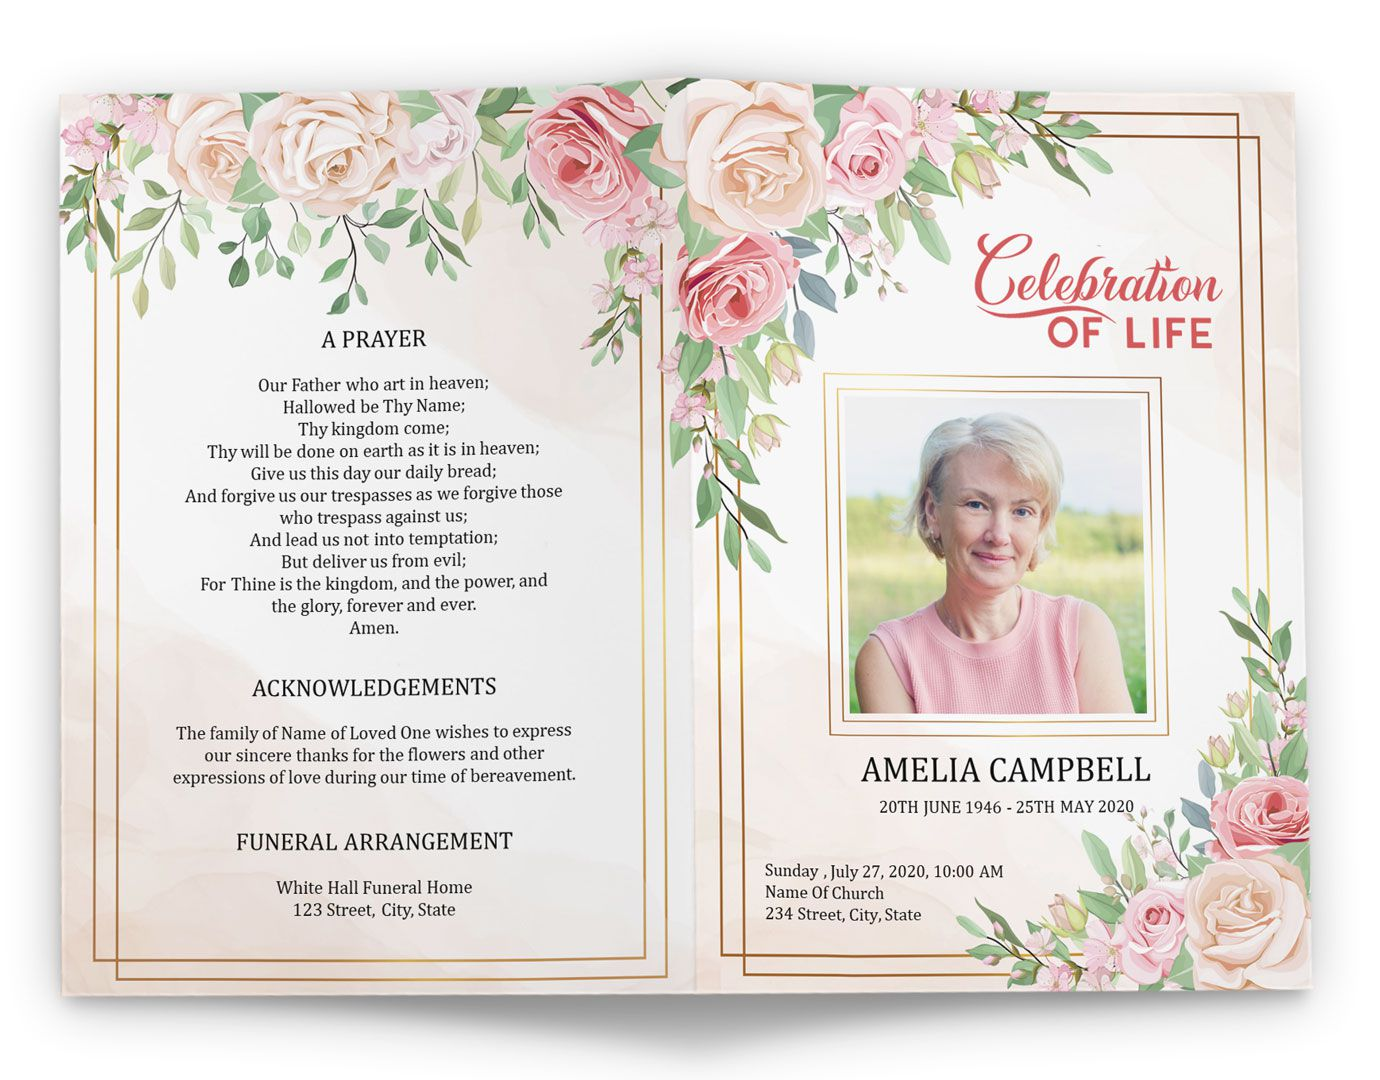 004 Unbelievable Free Editable Celebration Of Life Program Template High Resolution Full